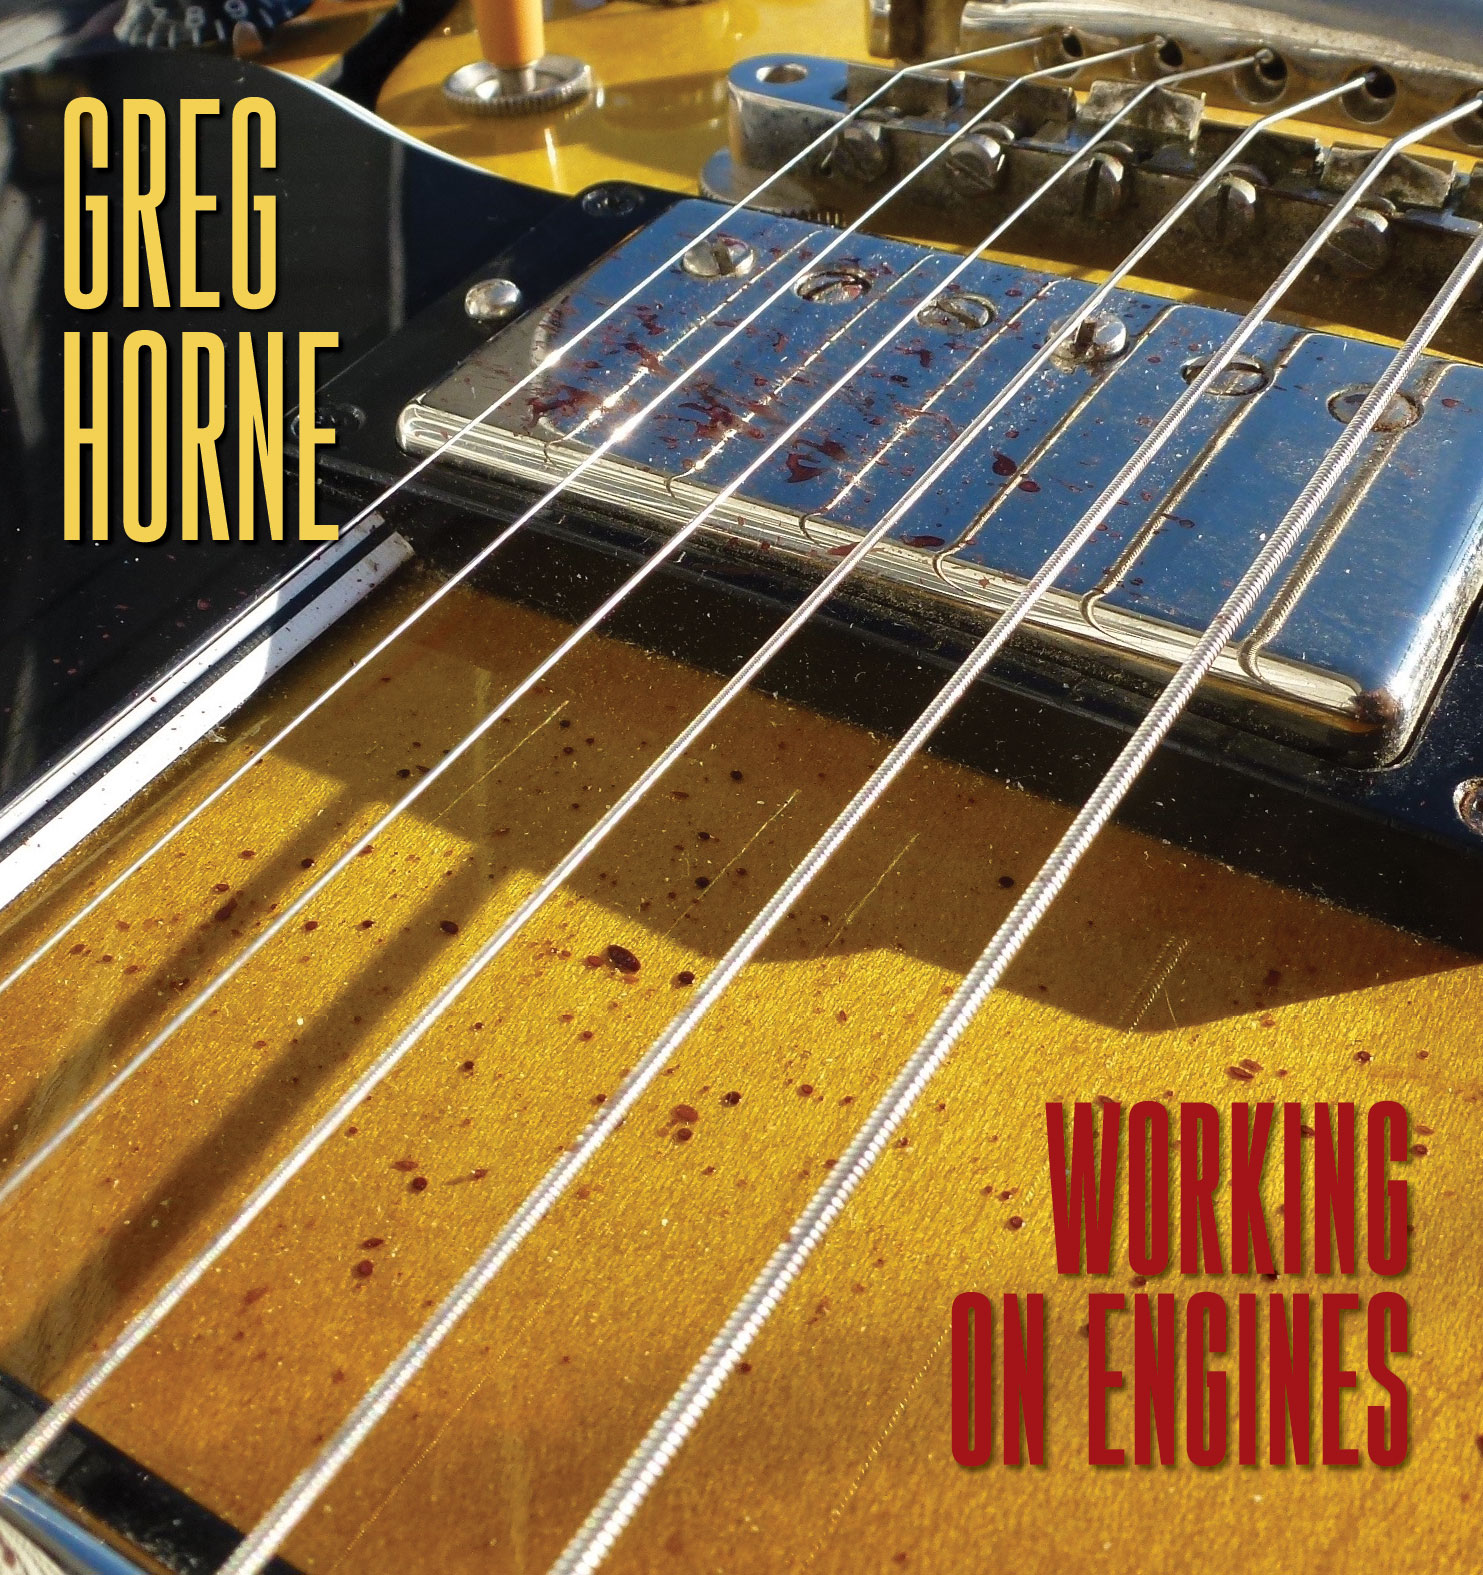 GregHorne_WorkingOnEngines